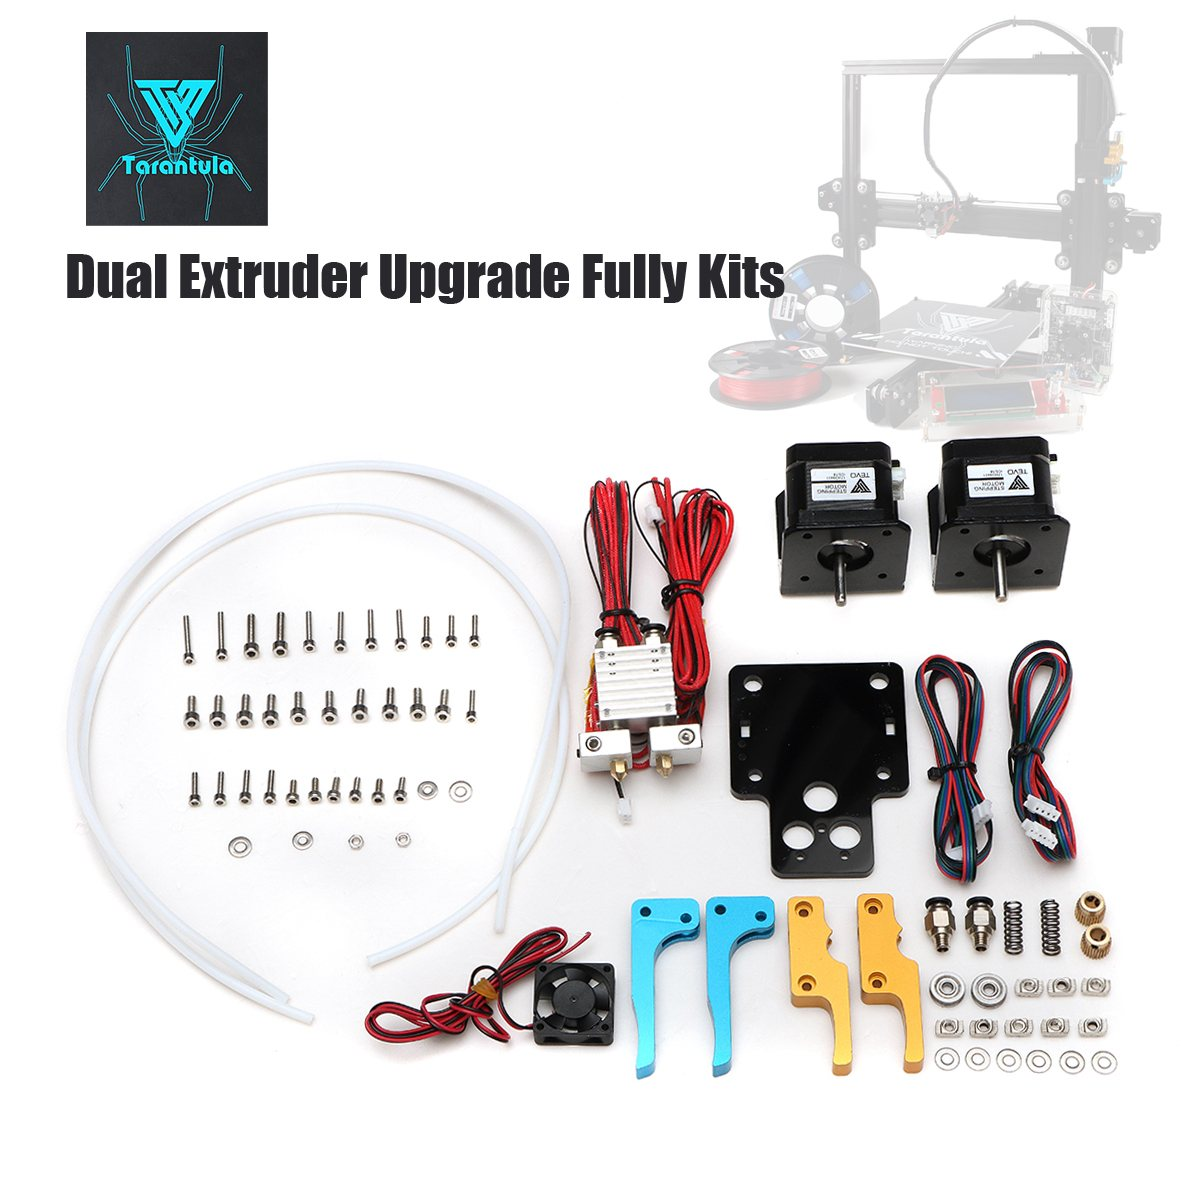 TEVO Tarantula Dual Extruder Upgrade Kits For 3D Printer With Cooling Fan and Nema17 Stepper Motor 2017 newest tevo tarantula 3d printer impresora 3d diy impressora 3d with filament micro sd card titan extruder i3 3d printer